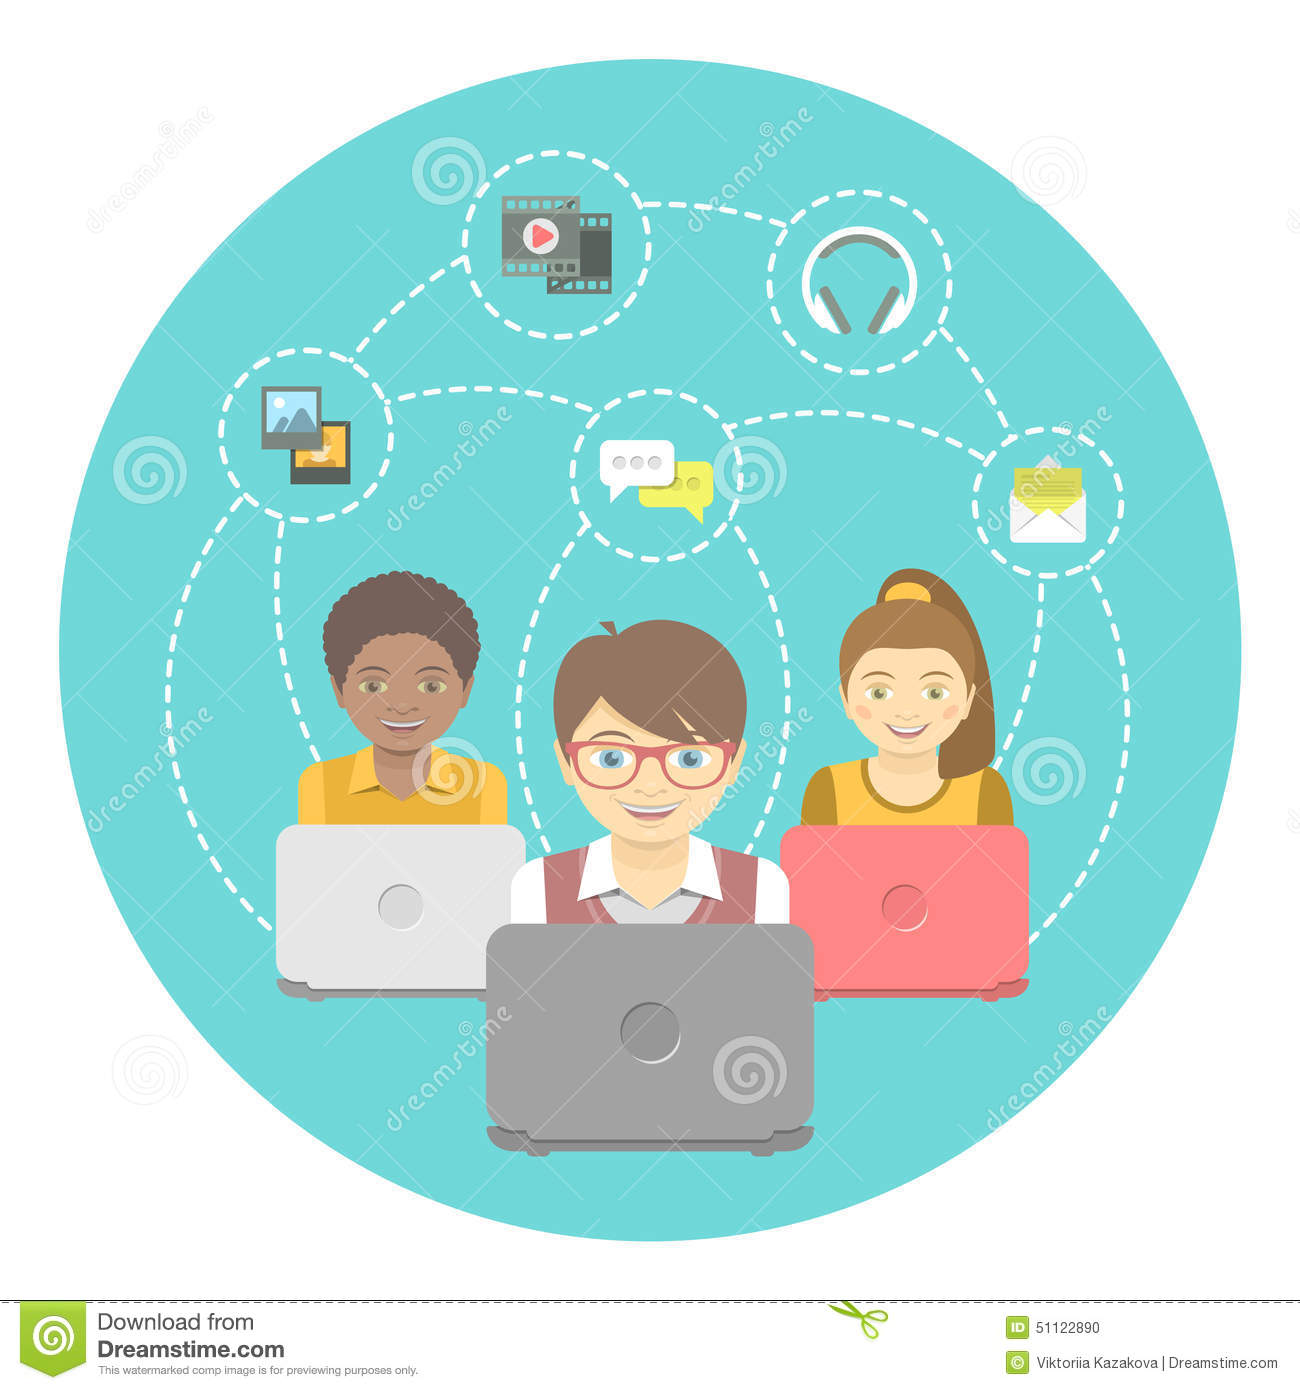 internet on modern society Free essay: the influence of the internet on modern society csc 1015 by ryan foreman 091811594 introduction this essay focuses on the impact that the.